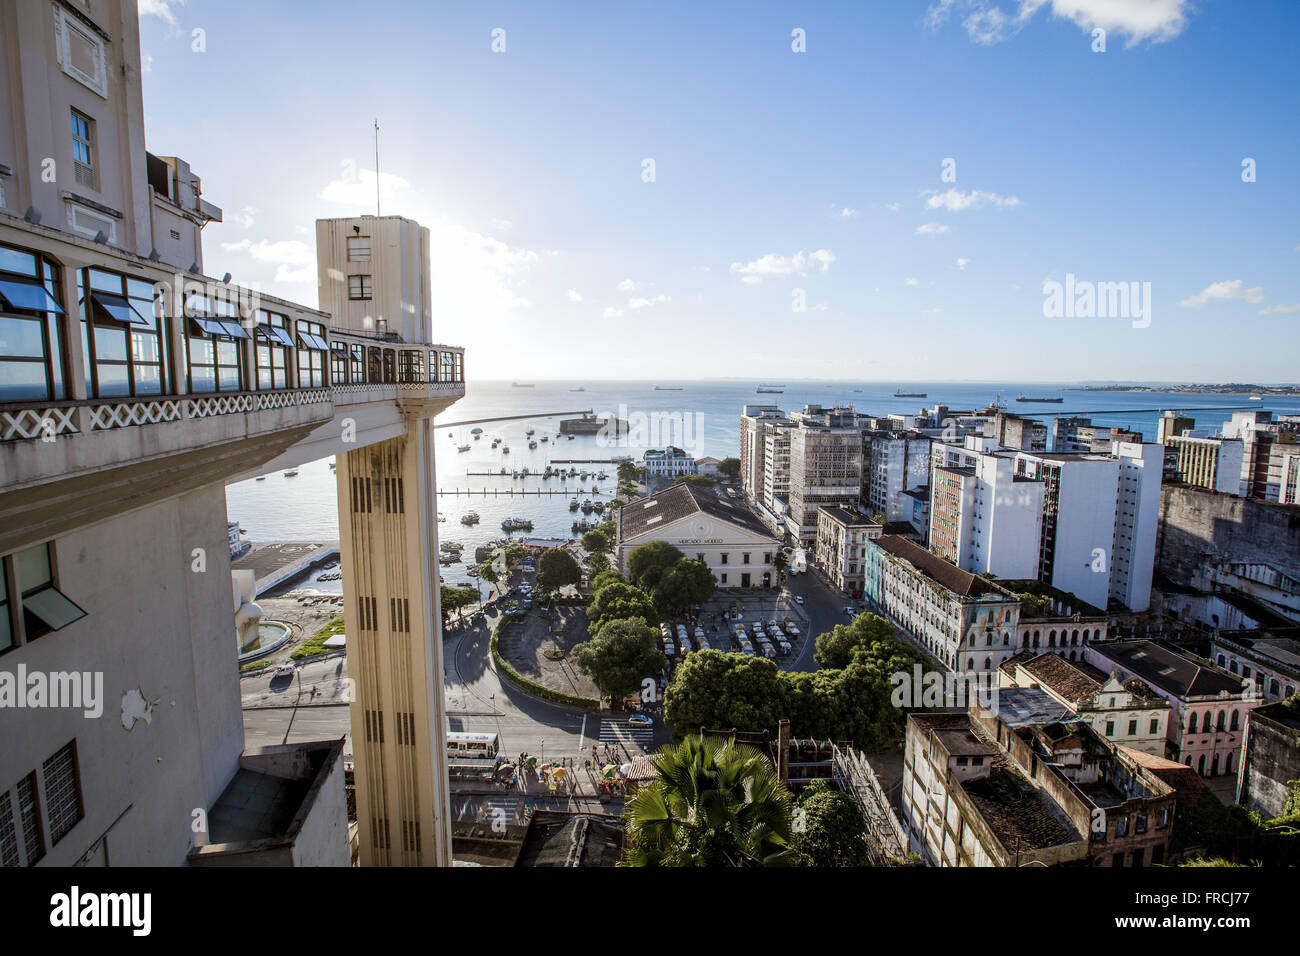 Lacerda Elevator - link between the lower city and the upper city - Stock Image